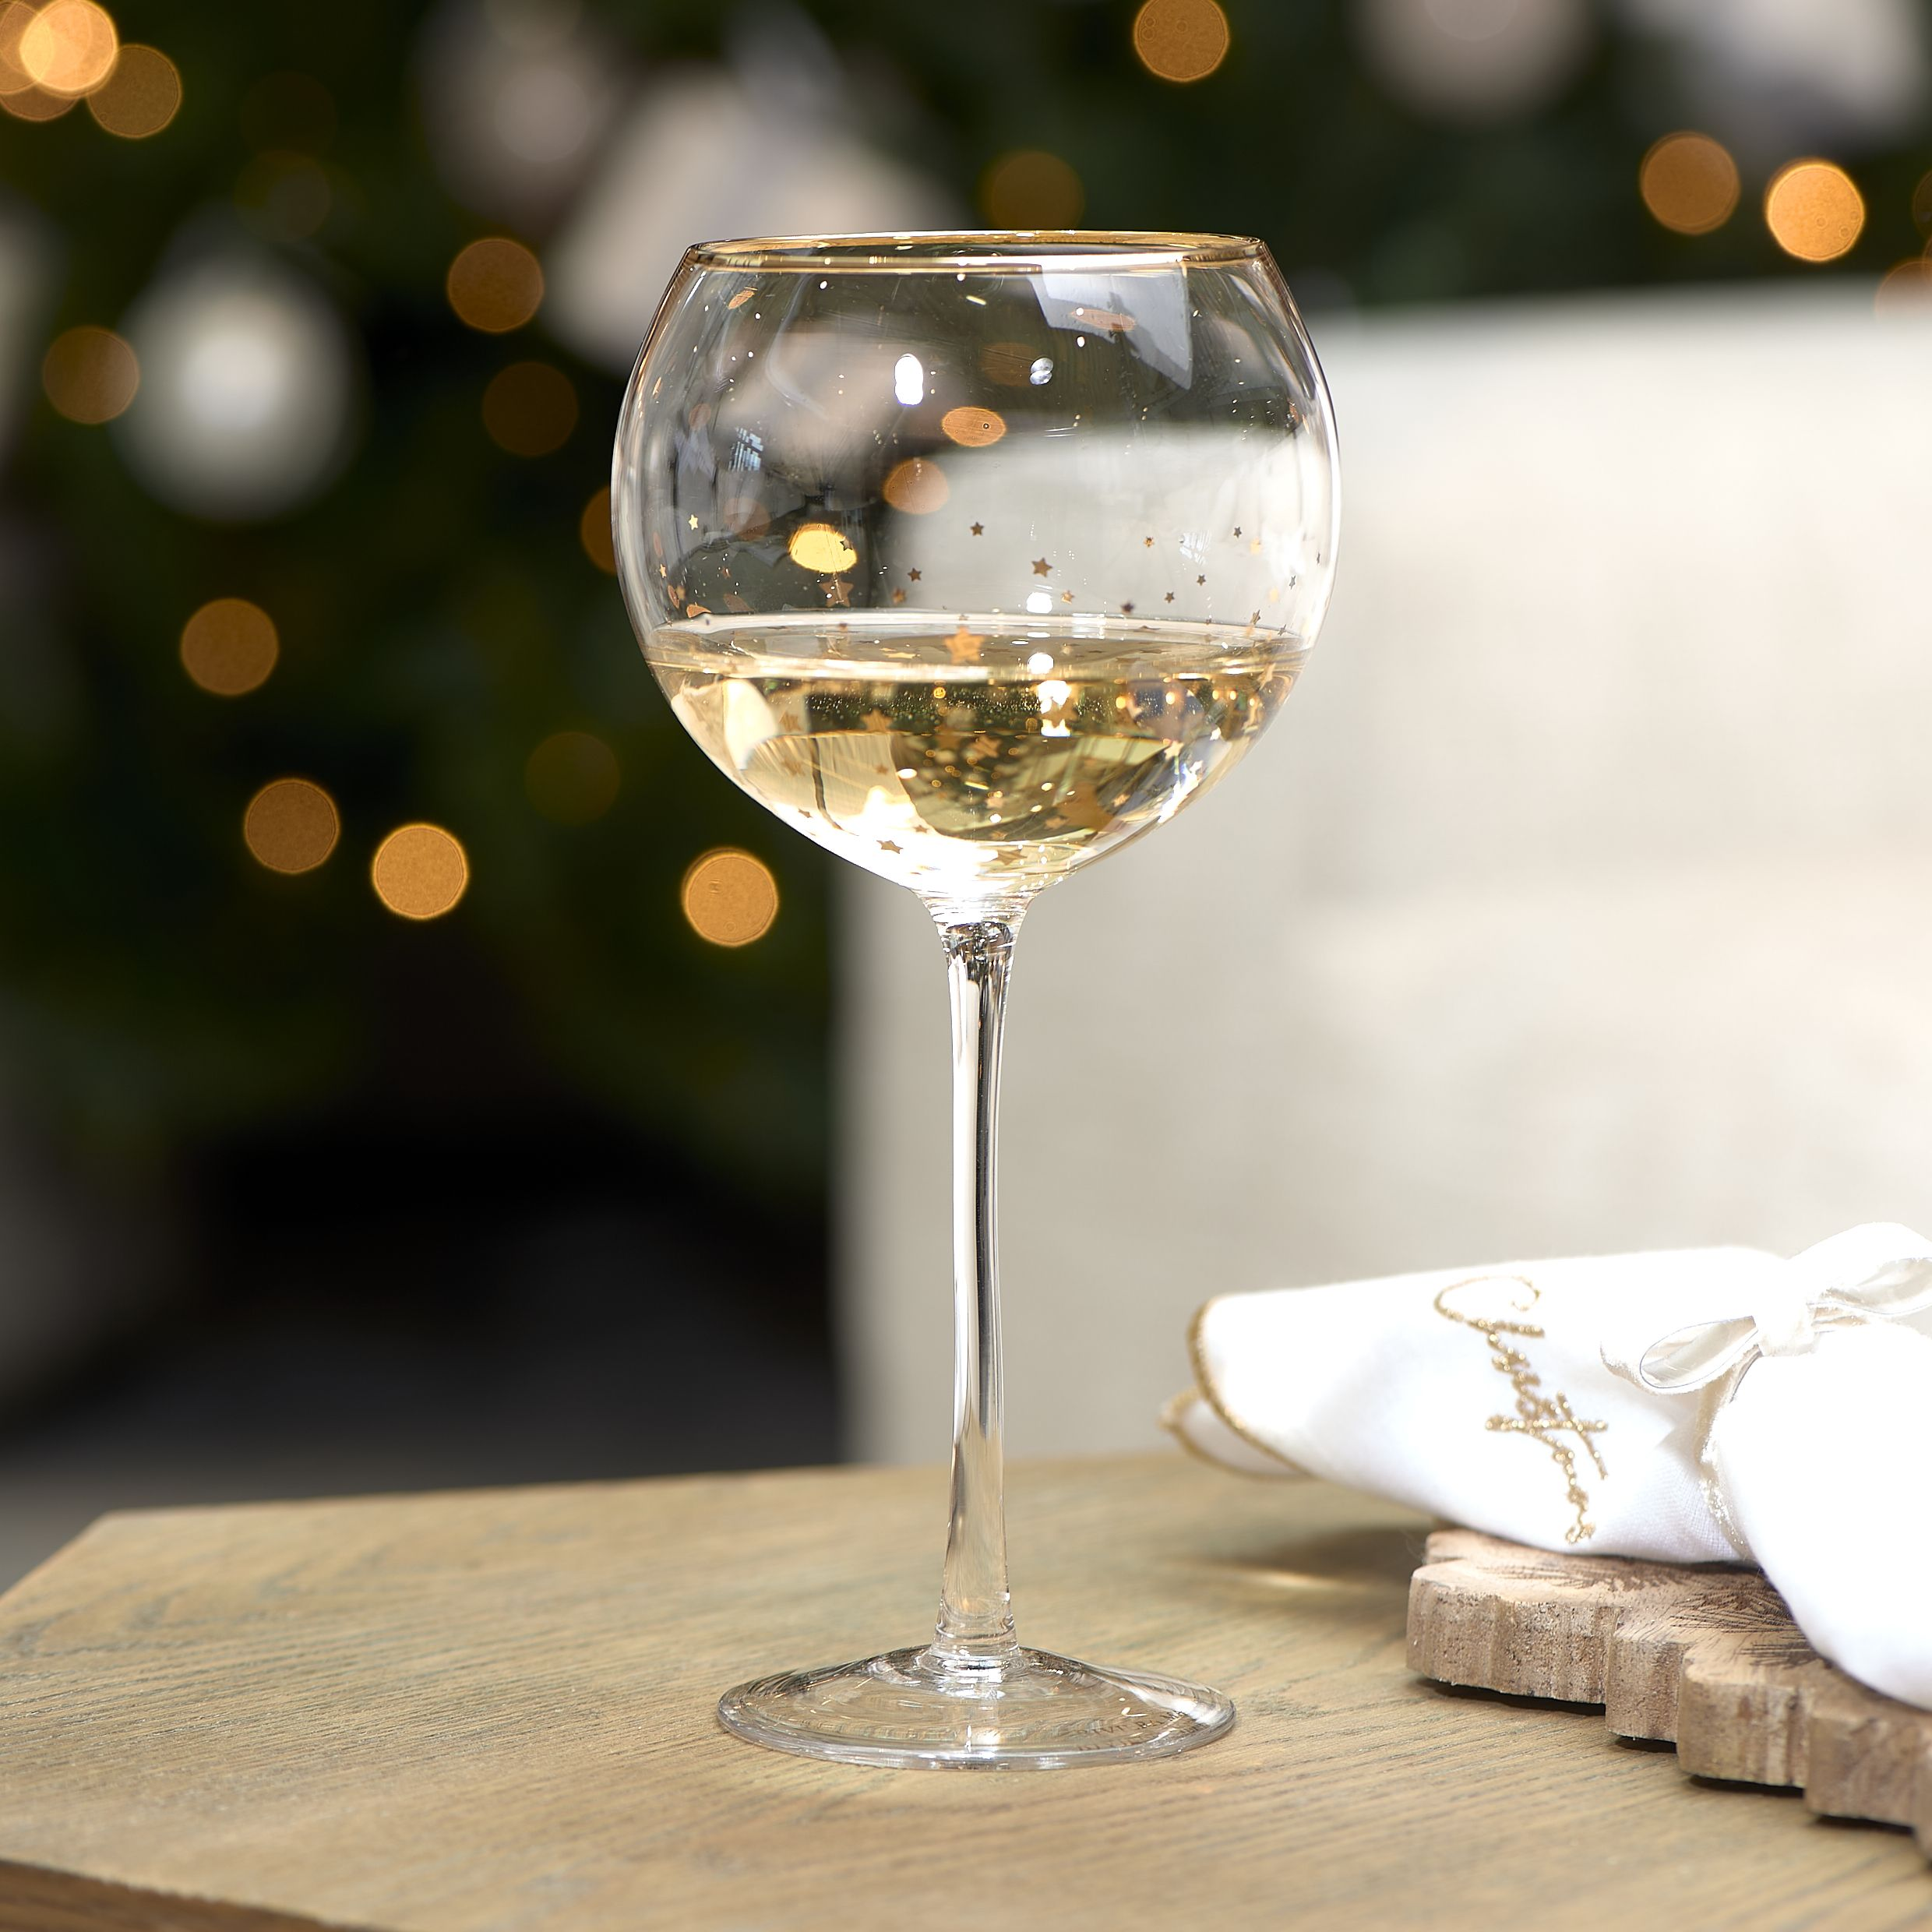 Nigh Before Christmas 2020 Glass Riviéra Maison | Starry Night Wine Glass in 2020 | Wine glass